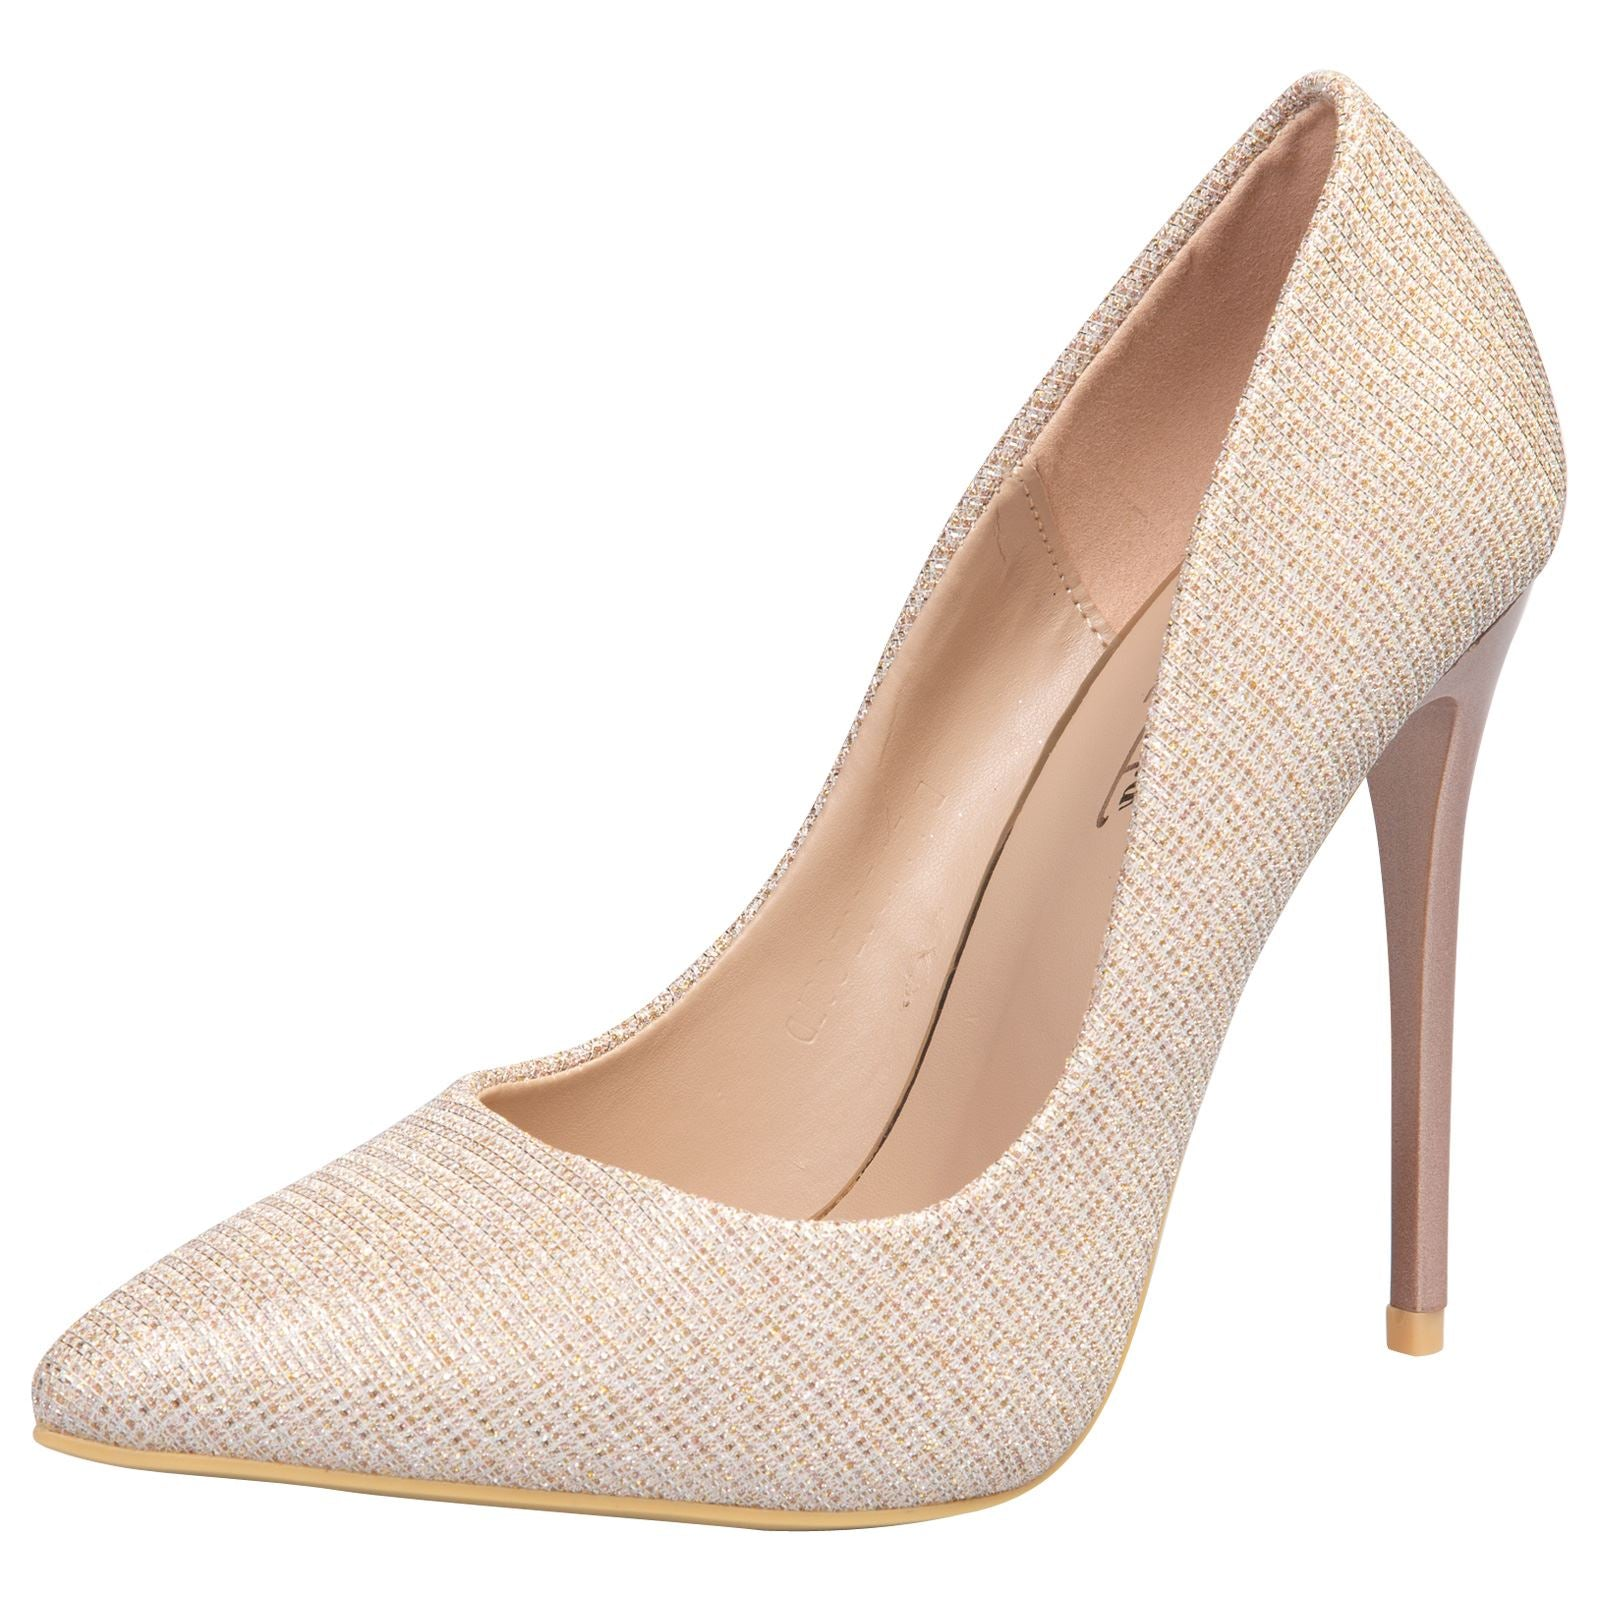 Laverne Pointed Toe Court Shoes in Rose Gold Shimmer